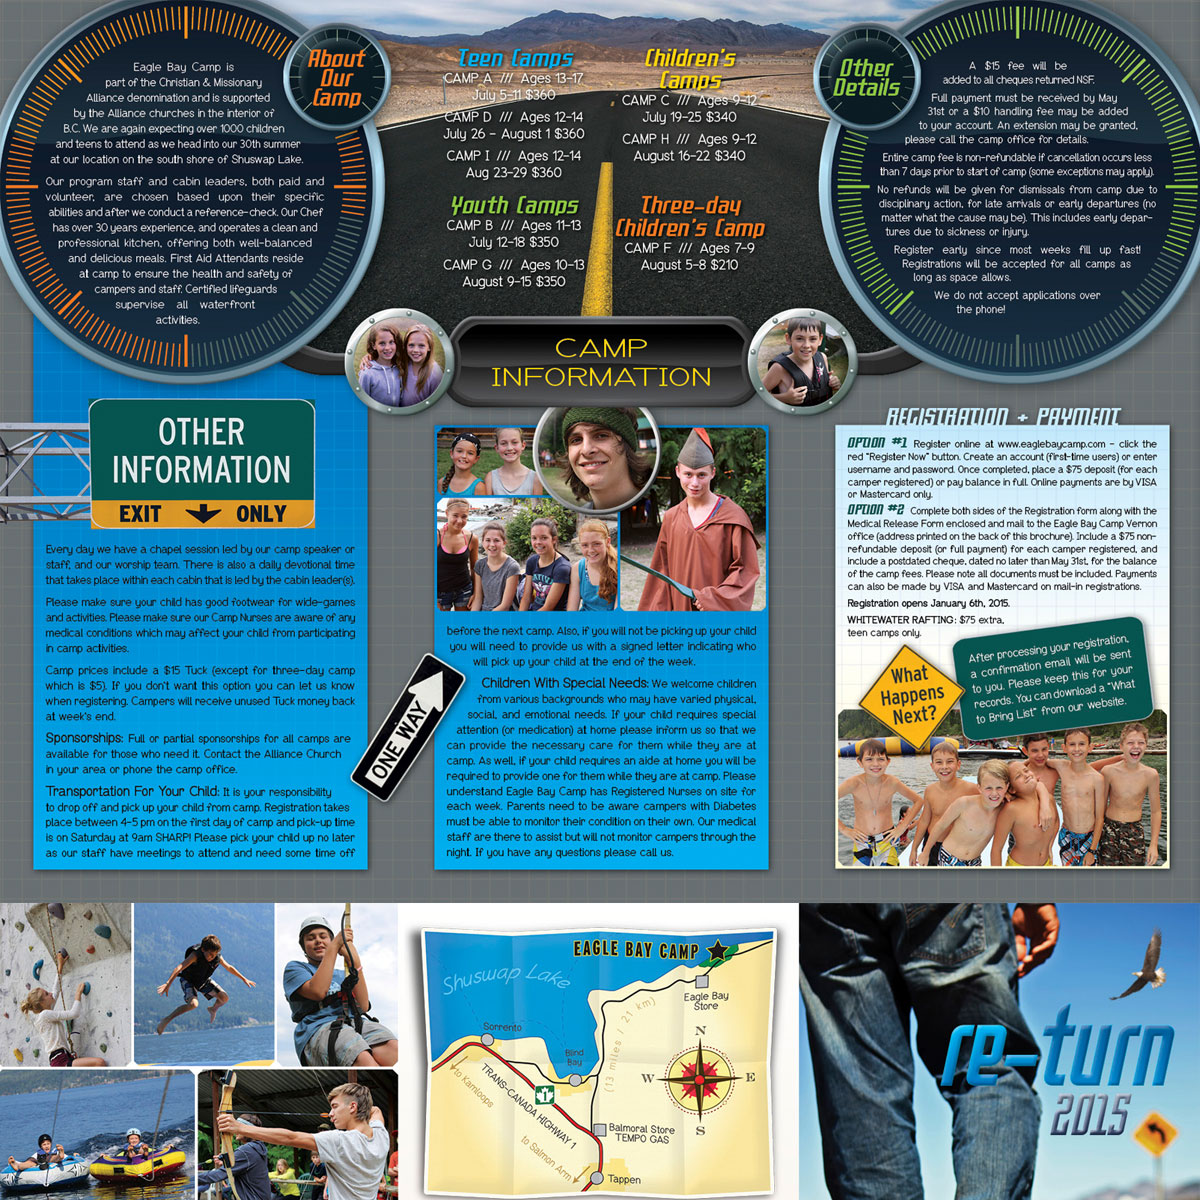 Eagle Bay brochure 2